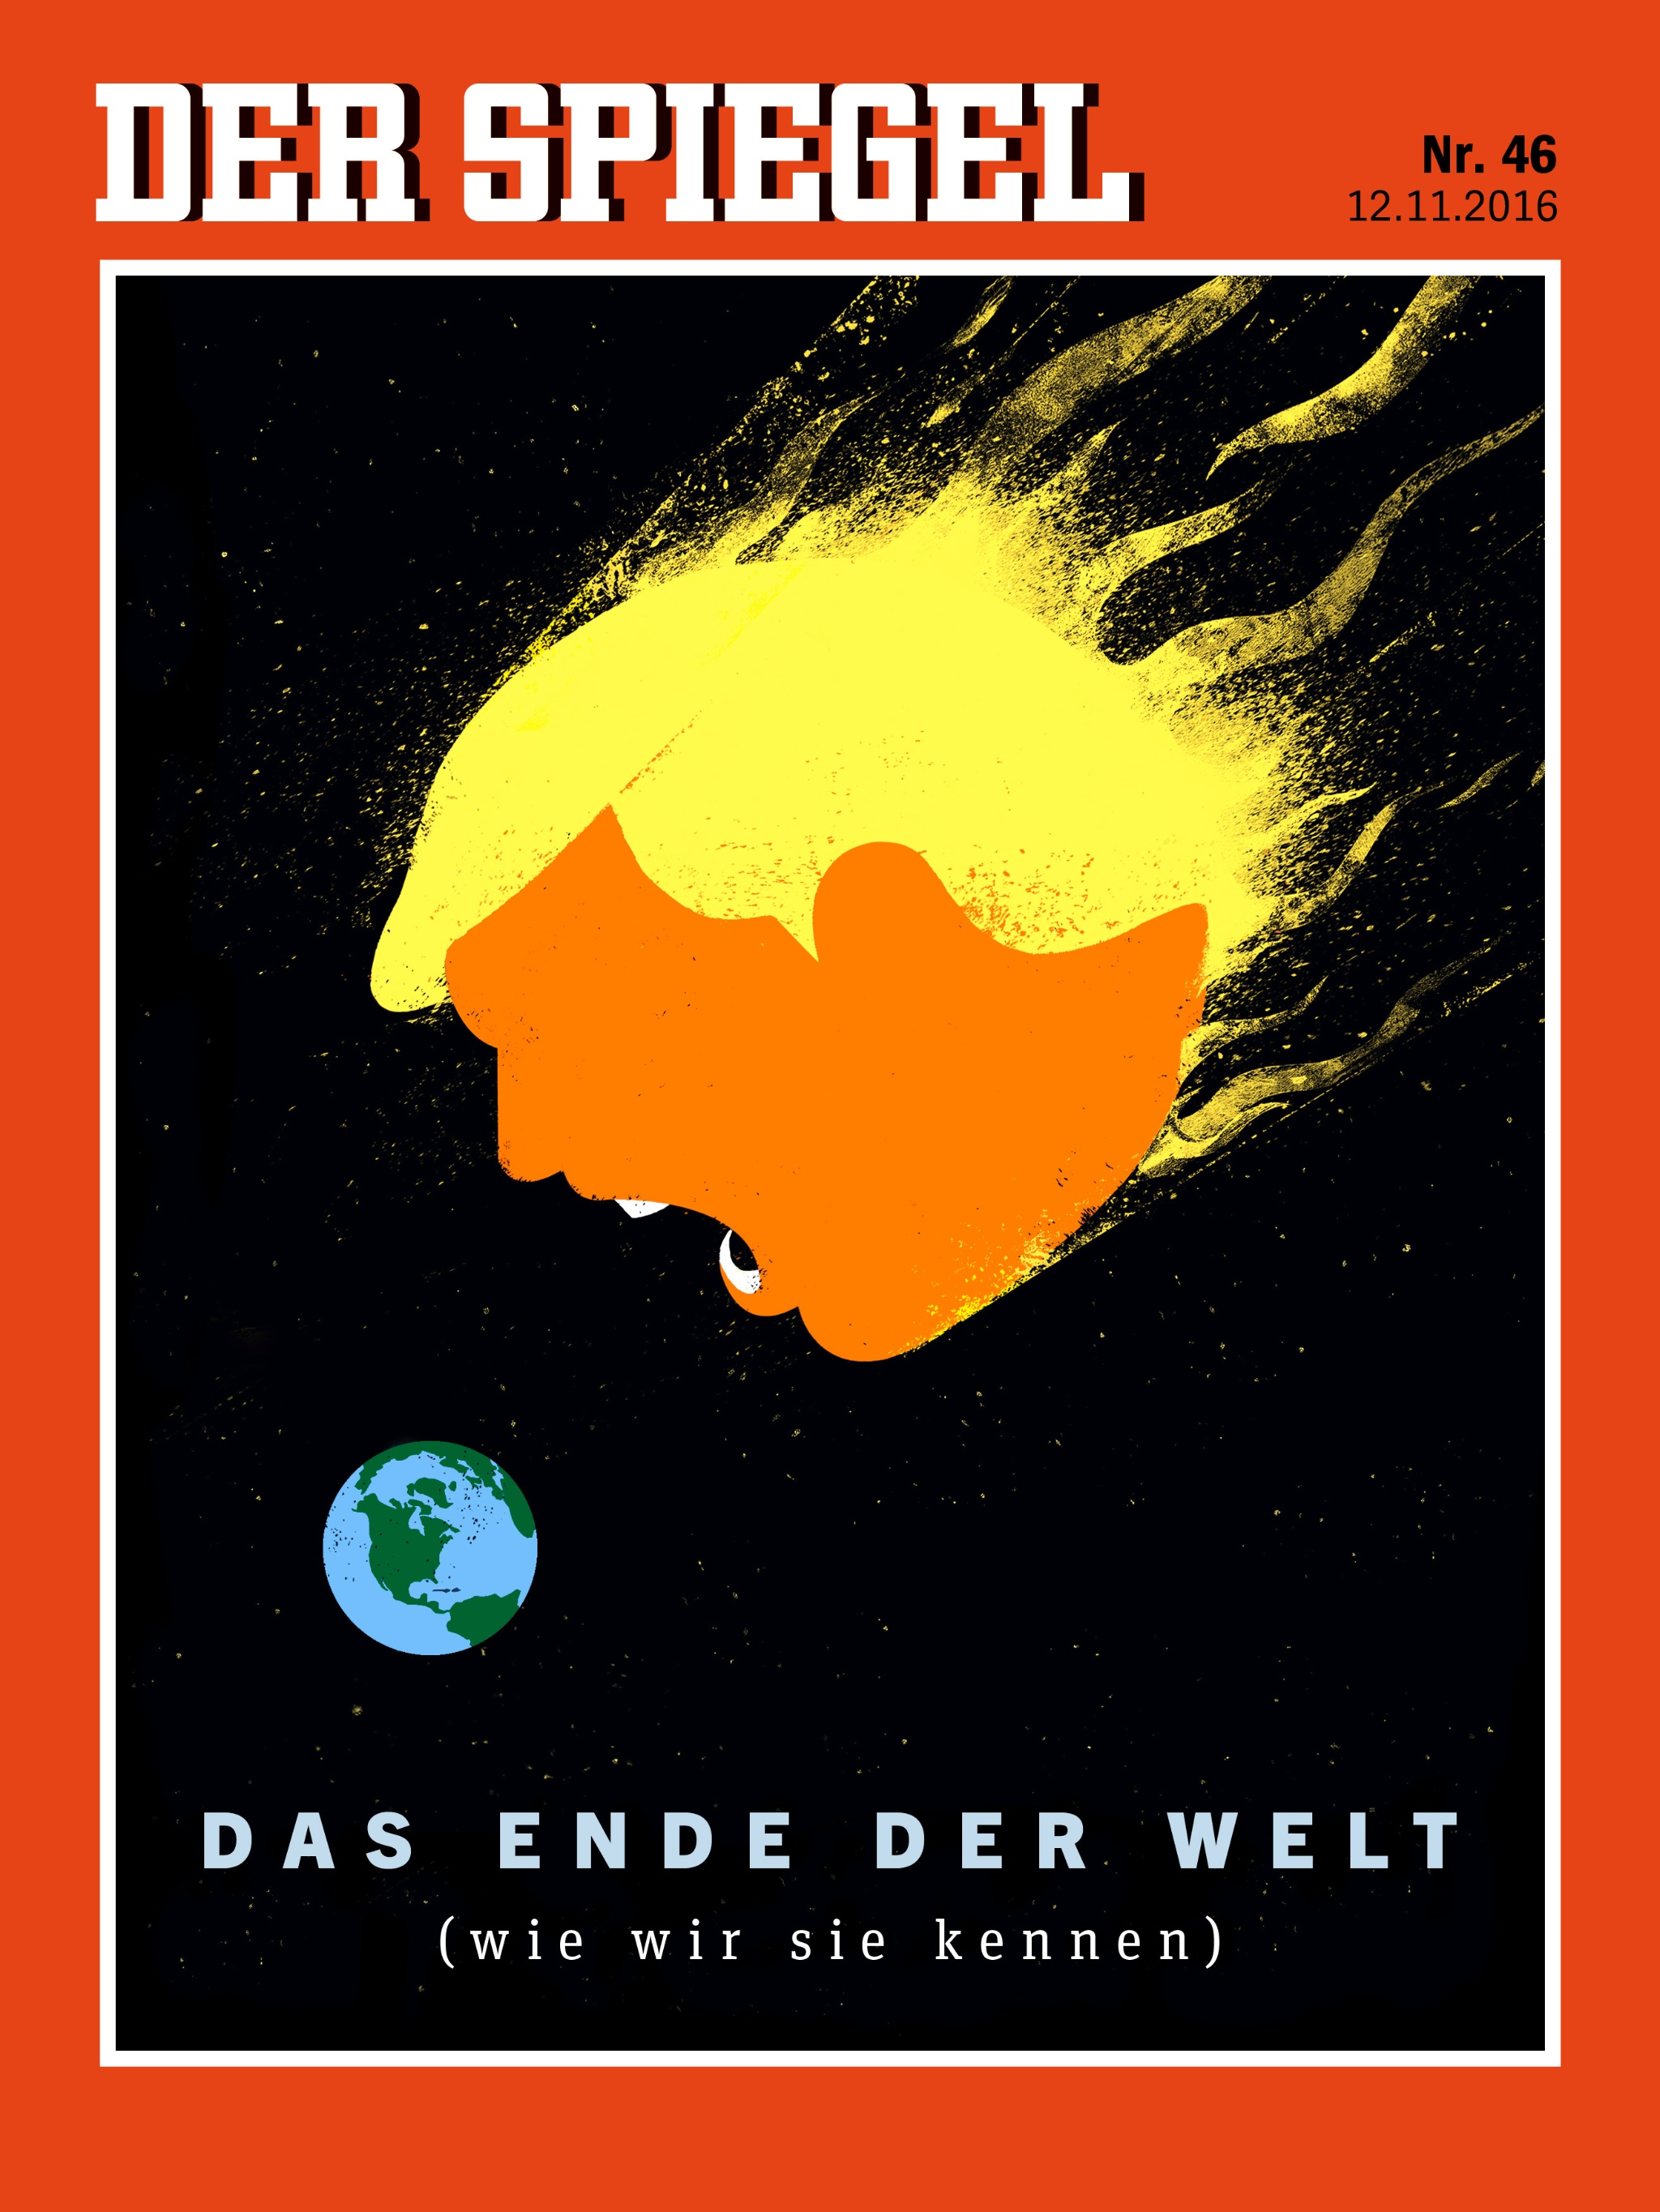 Badspiegel Jolled Donald Trump Makes Covers Great Again Villamedia